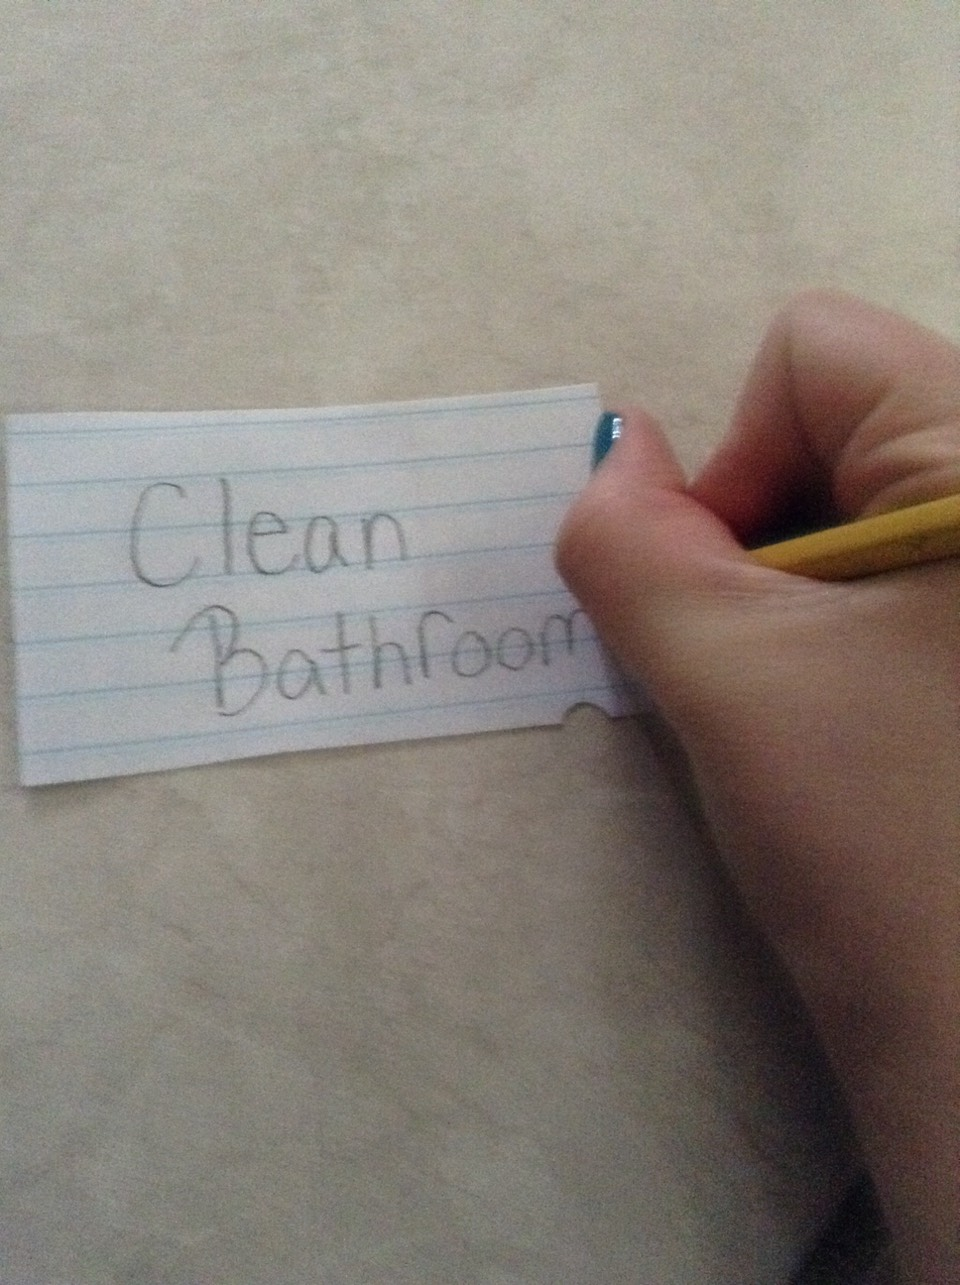 On one side write a chore